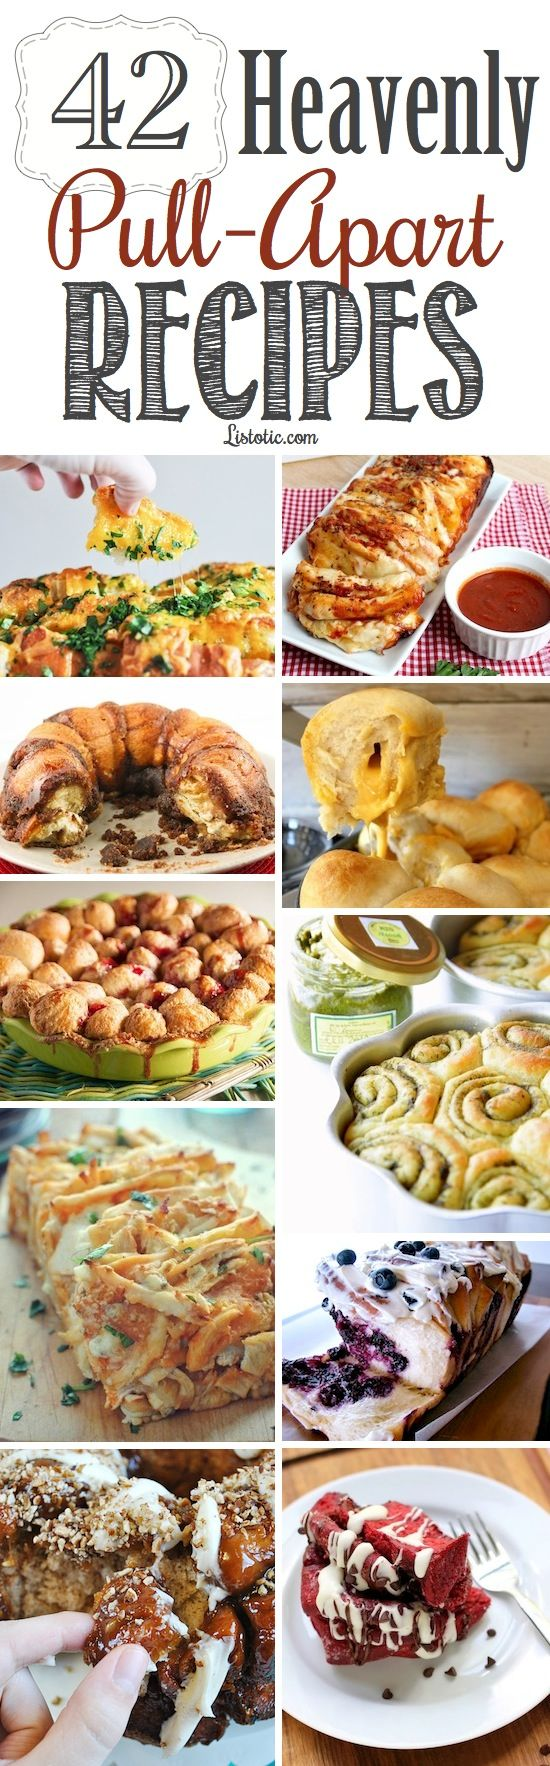 42 of the best pull-apart recipes!! http://www.listotic.com/42-mouthwatering-pull-apart-recipes/ recipes location is under each picture